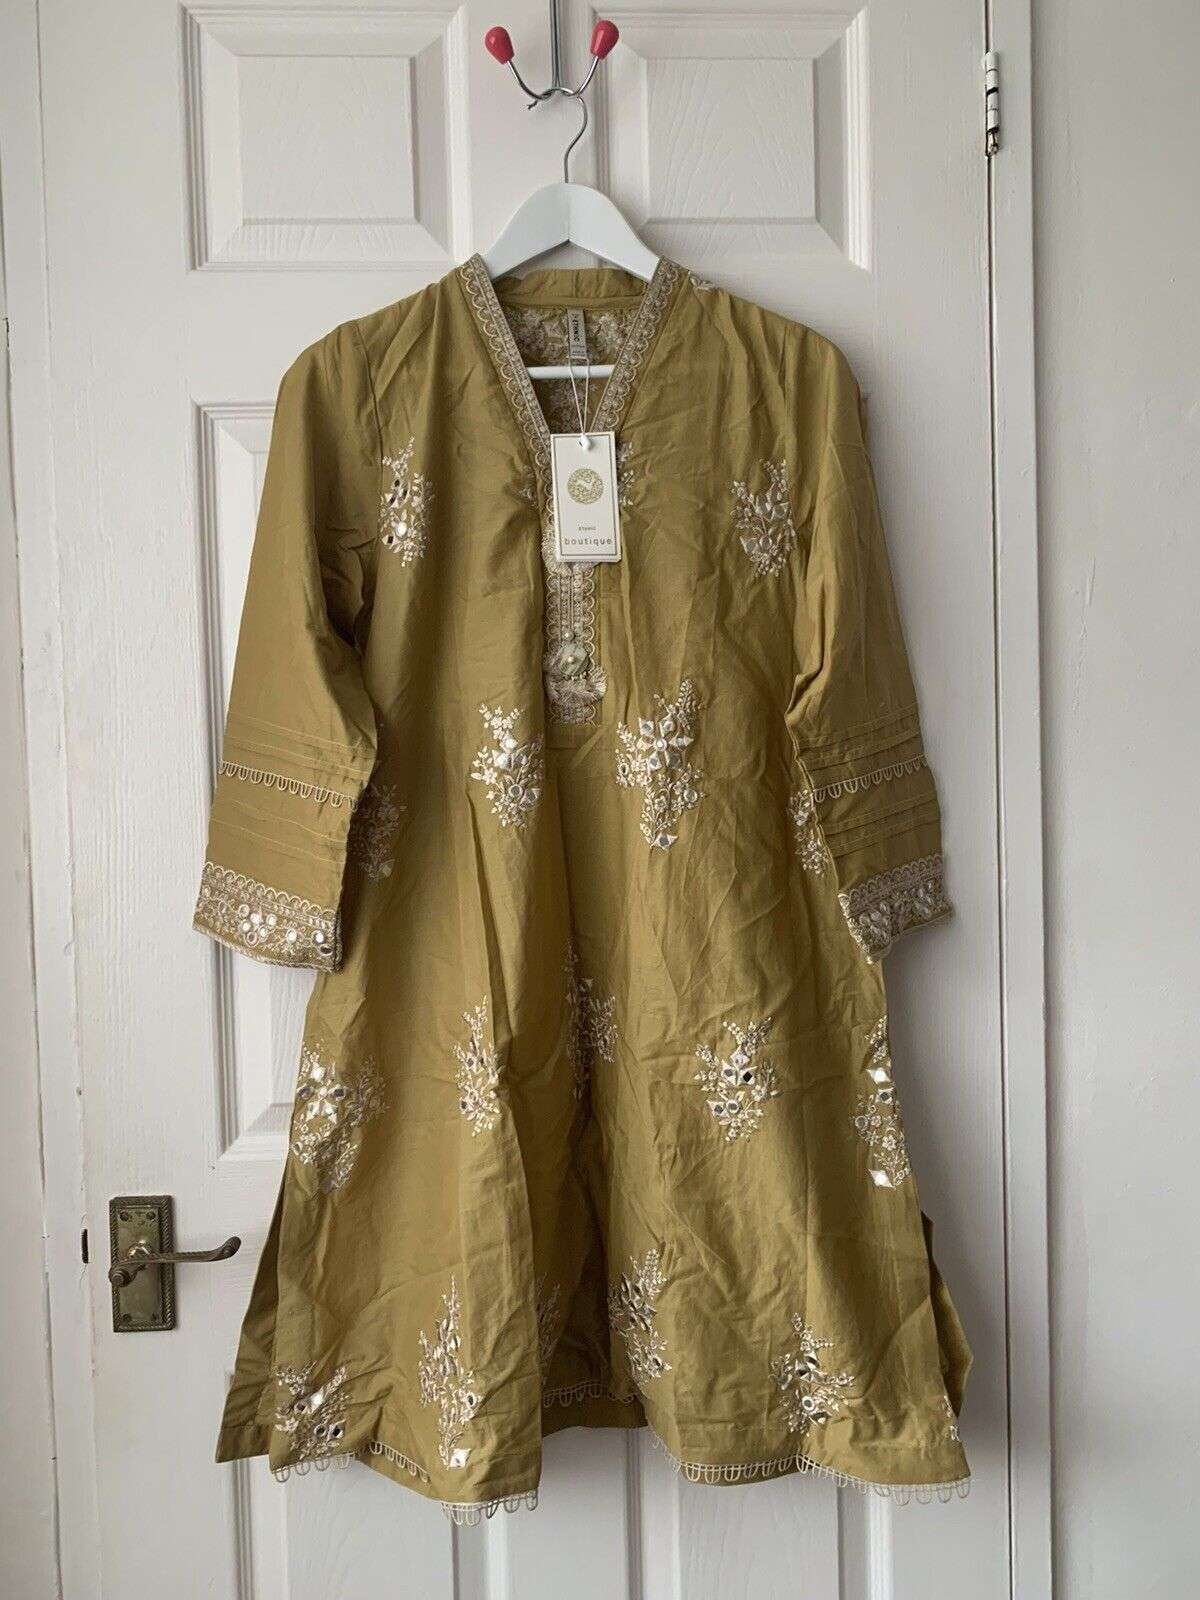 Ethnic By Outfitters EMBROIDERED SUIT/ 3pc: Stitched/ Size: S 100% Original